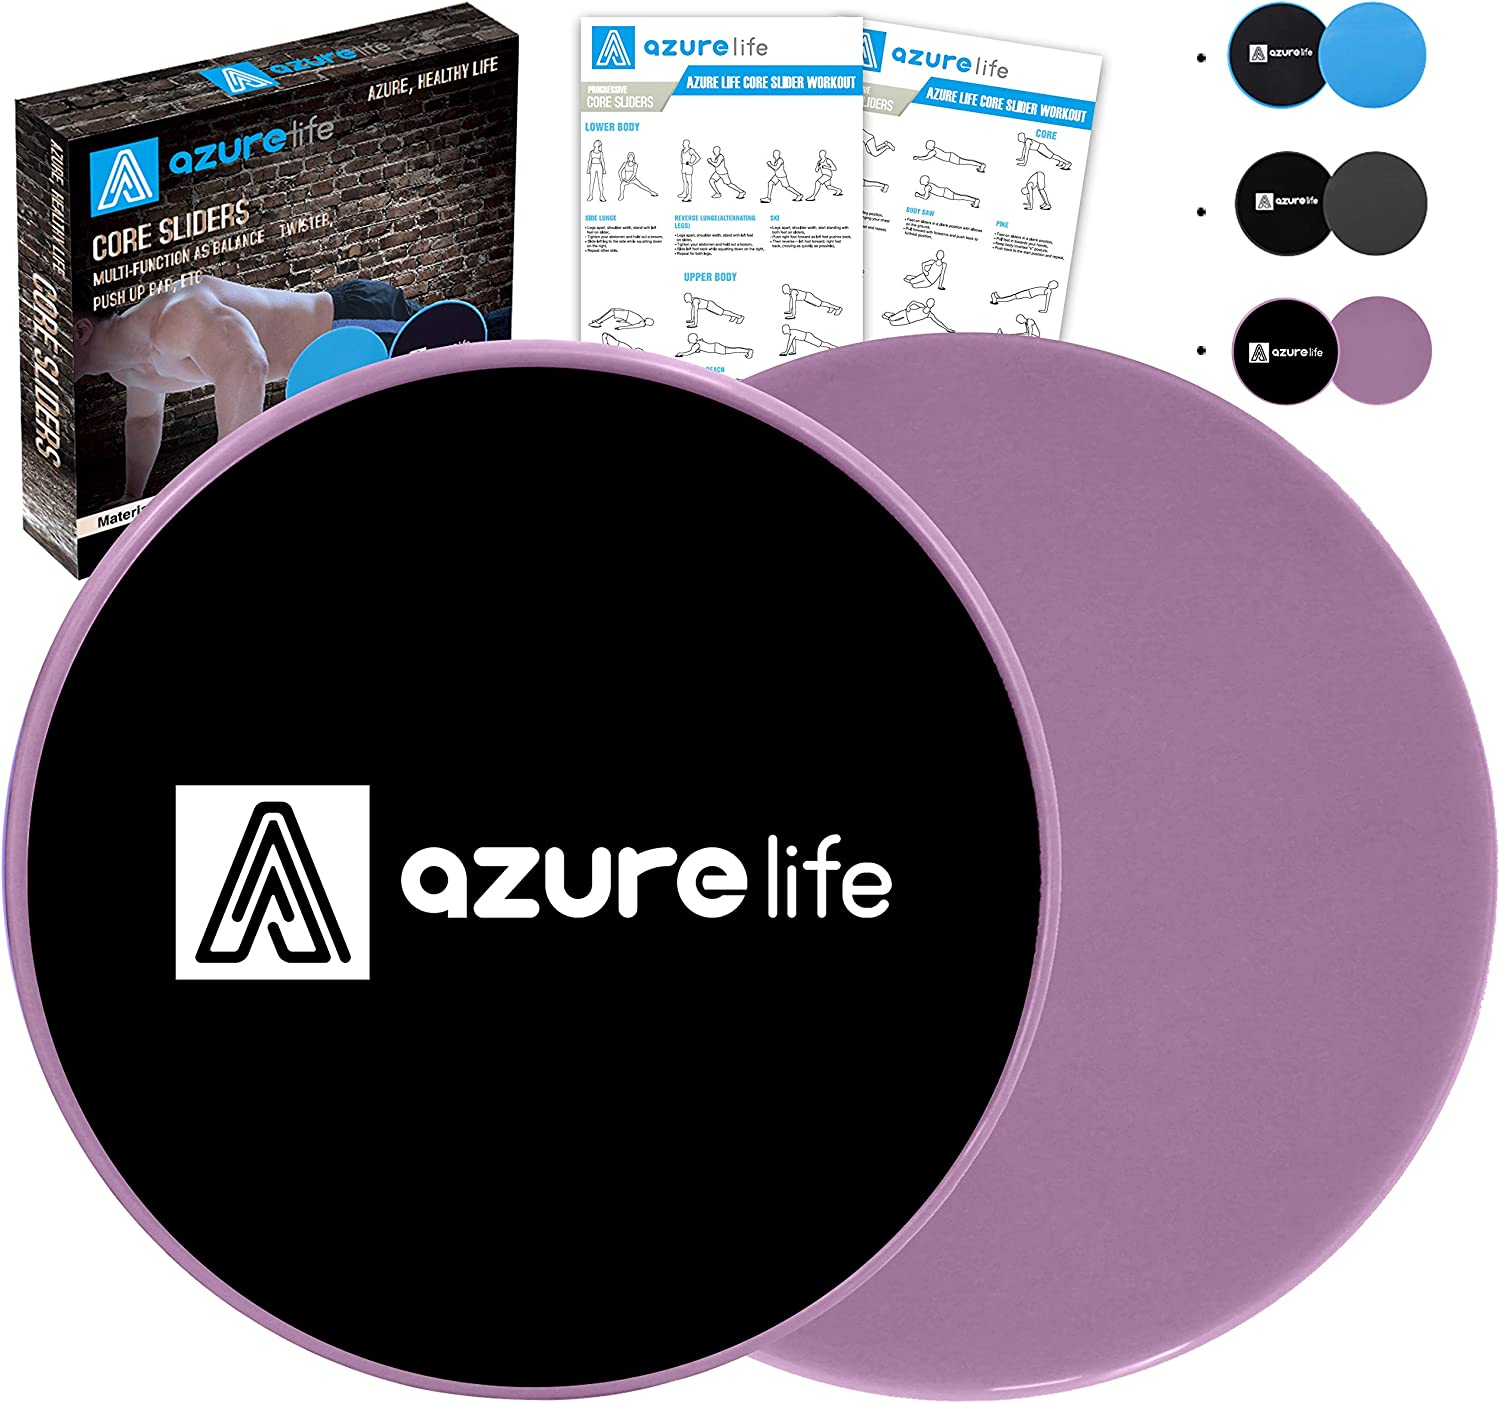 A AZURELIFE Exercise Core Sliders, 2 Pack Dual Sided Exercise Gliding Discs Use on All Surfaces, Light and Portable, Perfect for Abdominal&Core Workouts